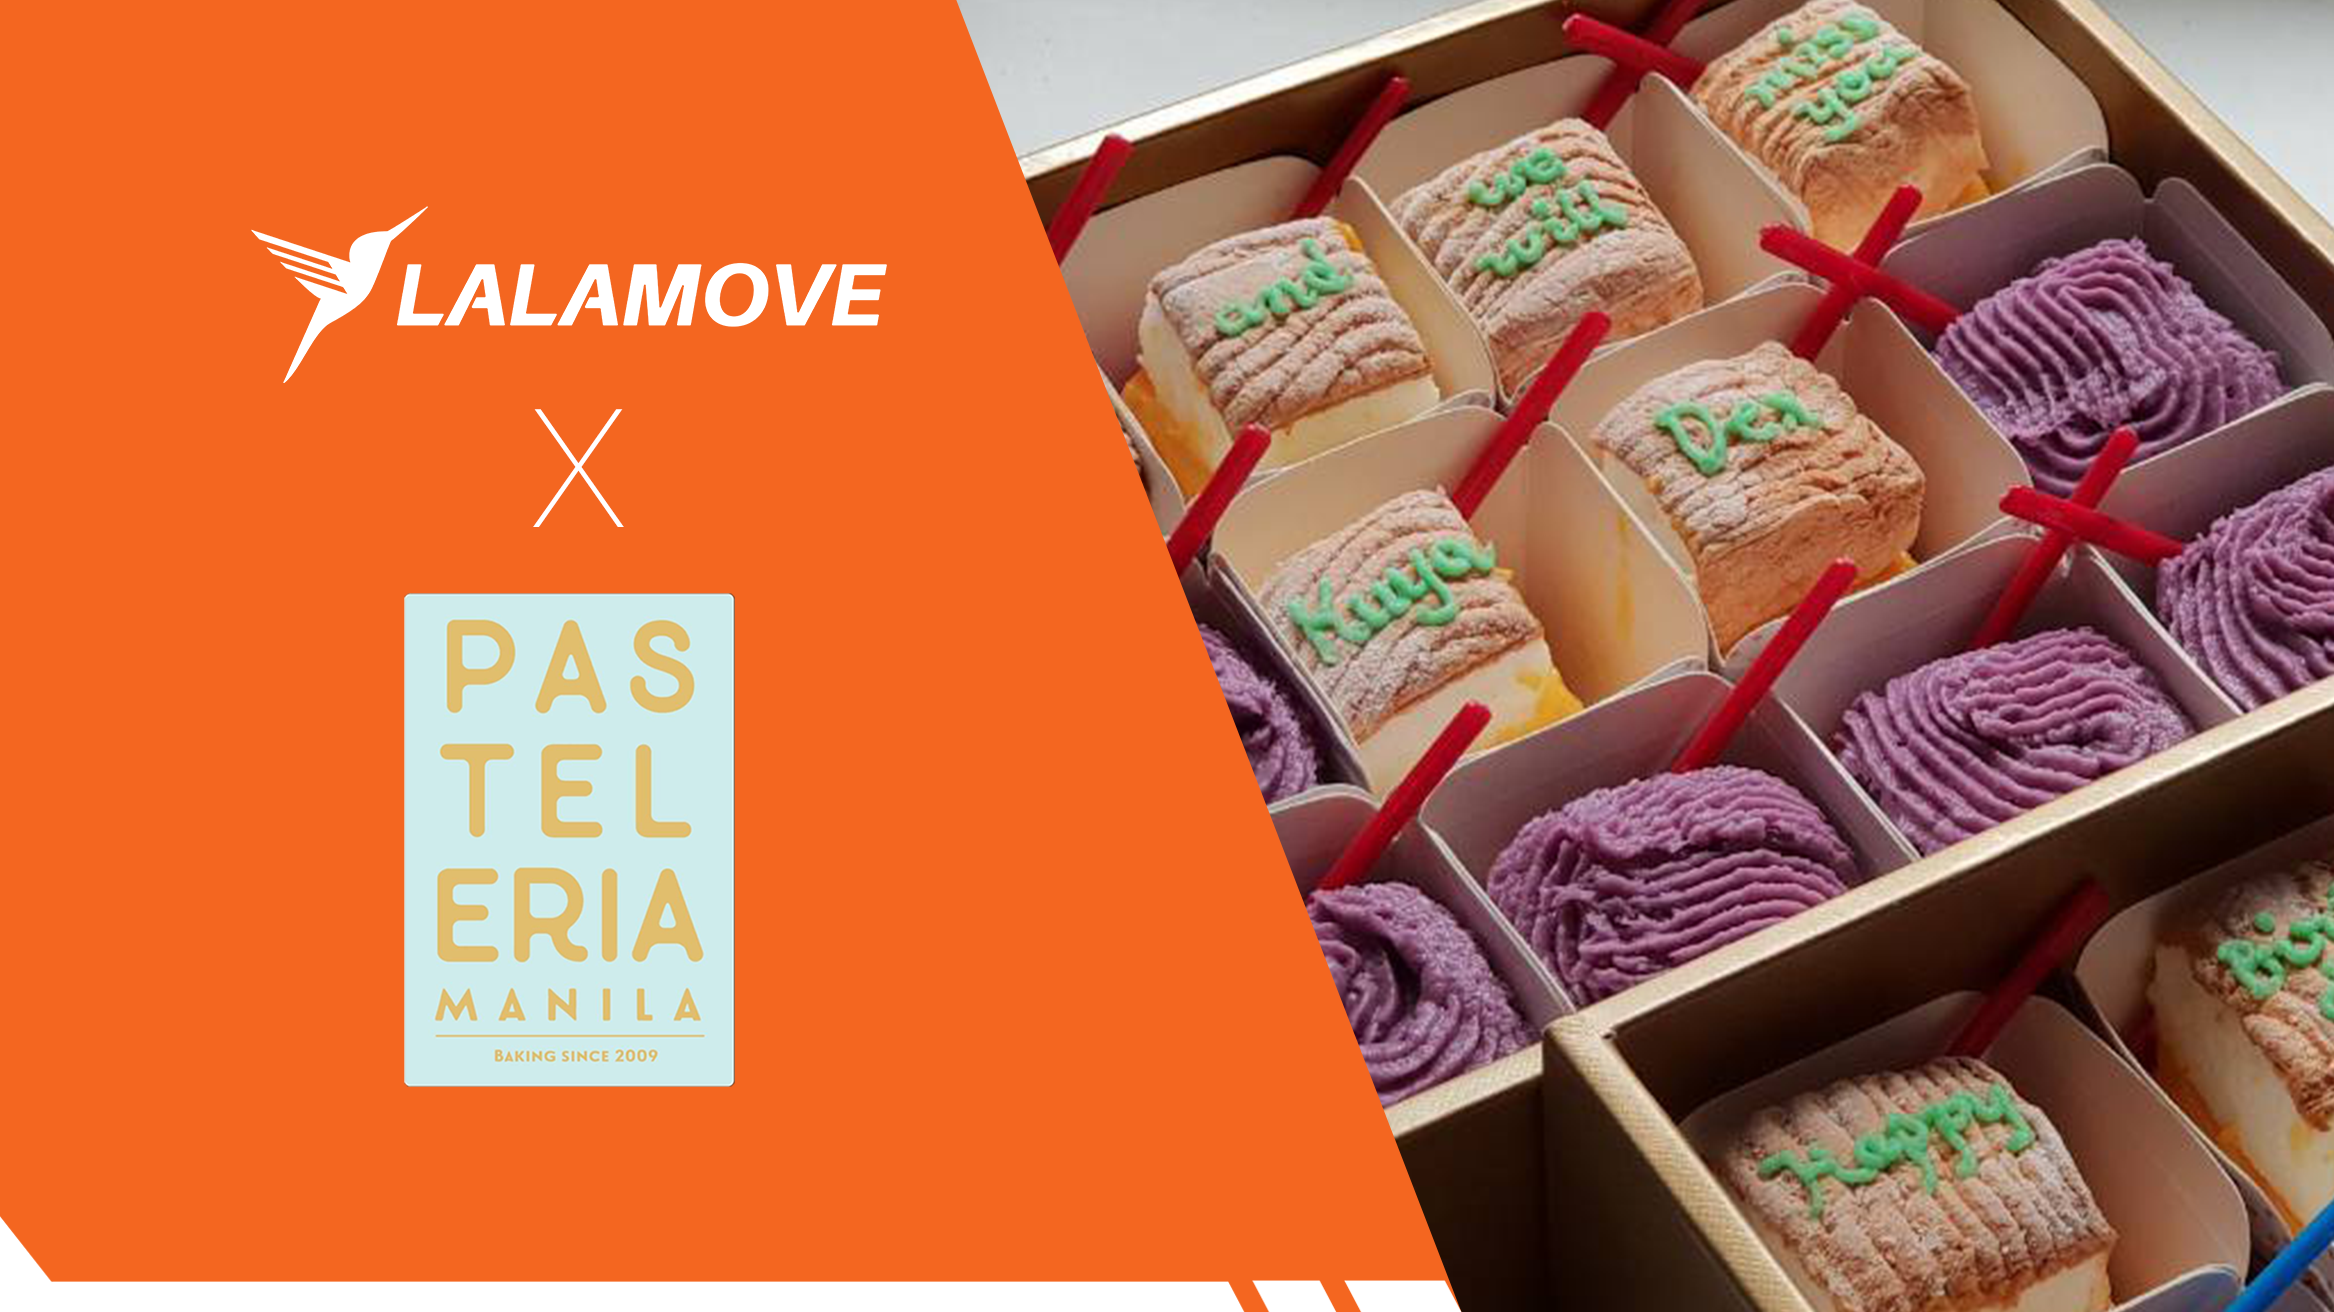 Pasteleria Manila's bitter journey now sees a better future made even sweeter with Lalamove!